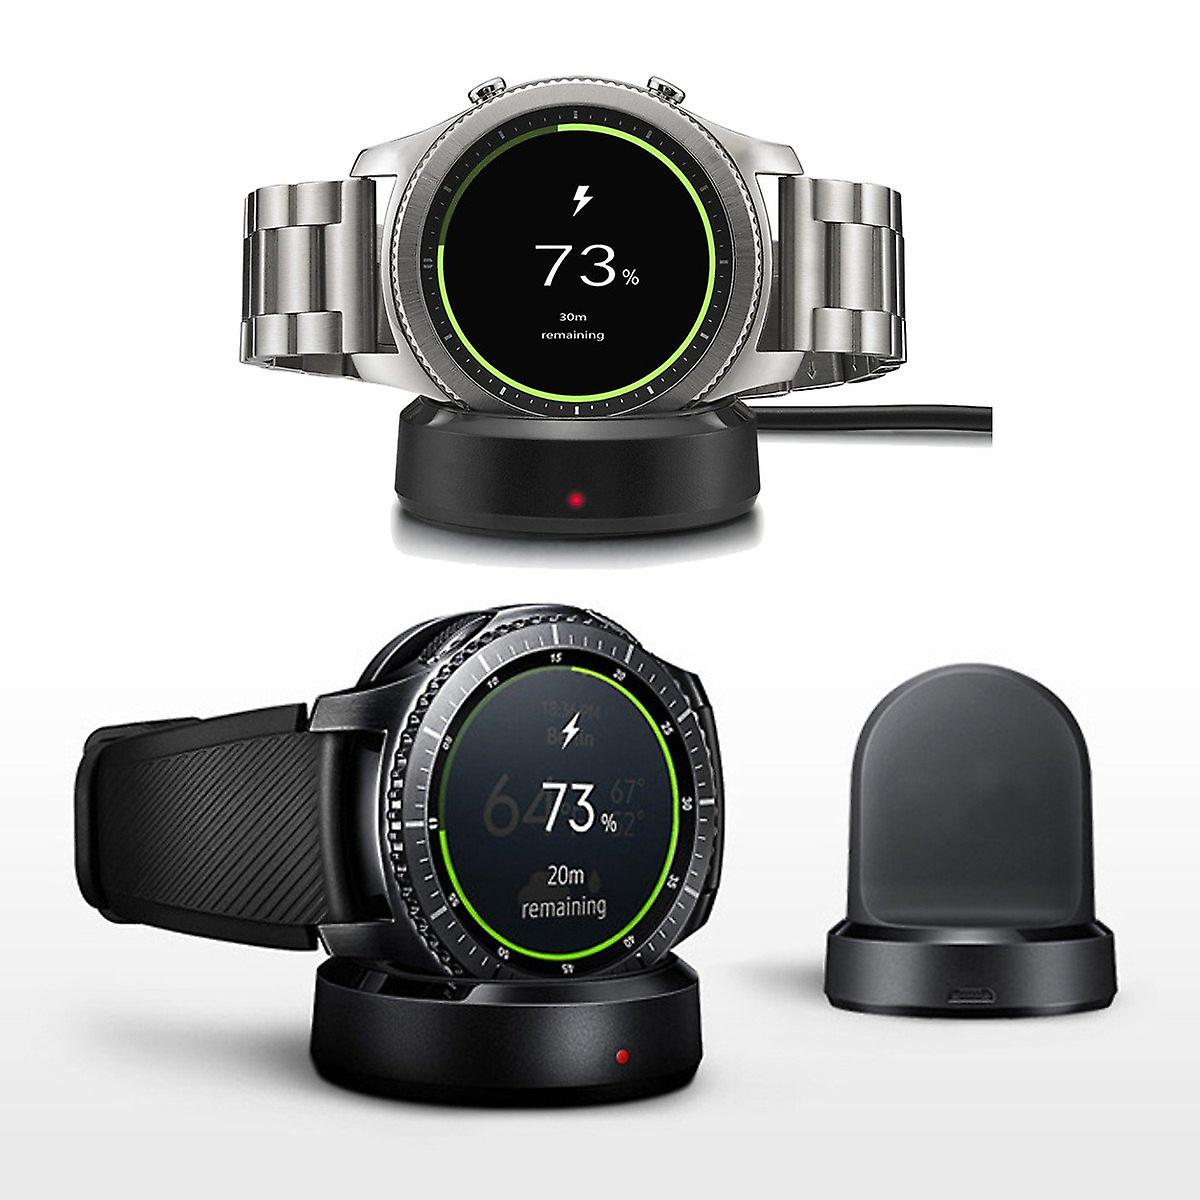 Qi wireless charging dock cradle charger for samsung gear s3 classic / frontier series 3